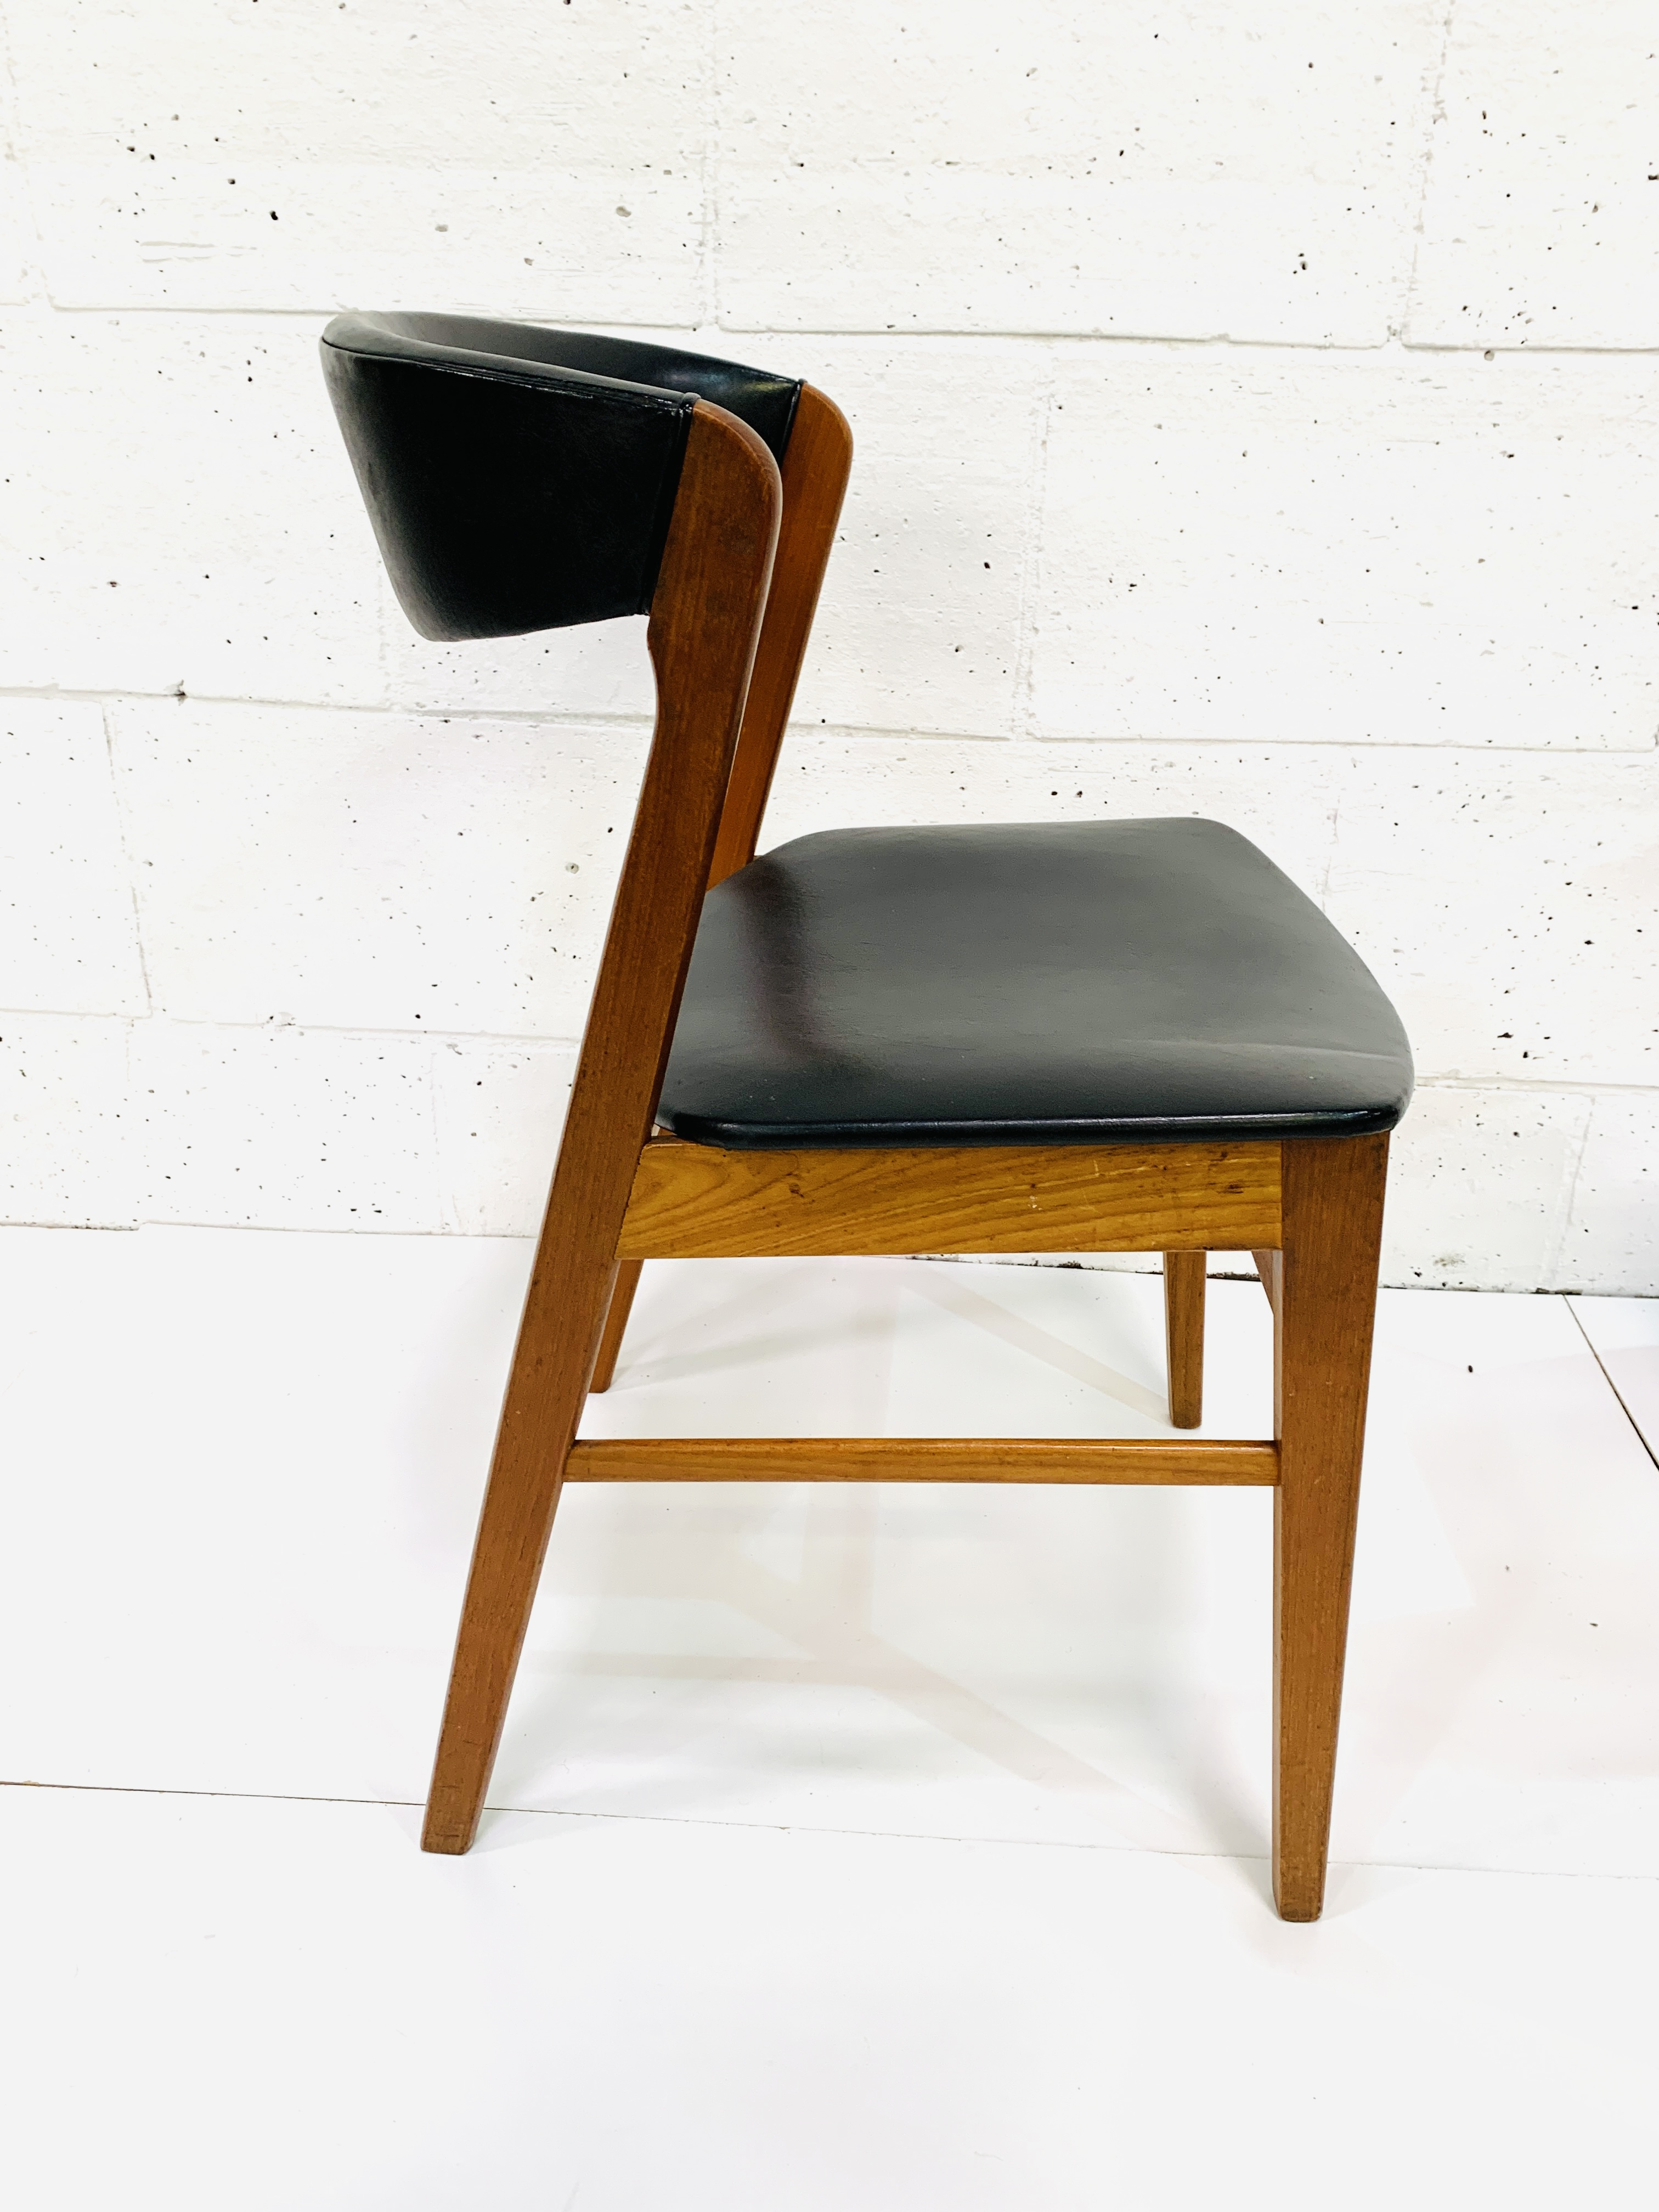 Six 1960's teak framed chairs - Image 6 of 7